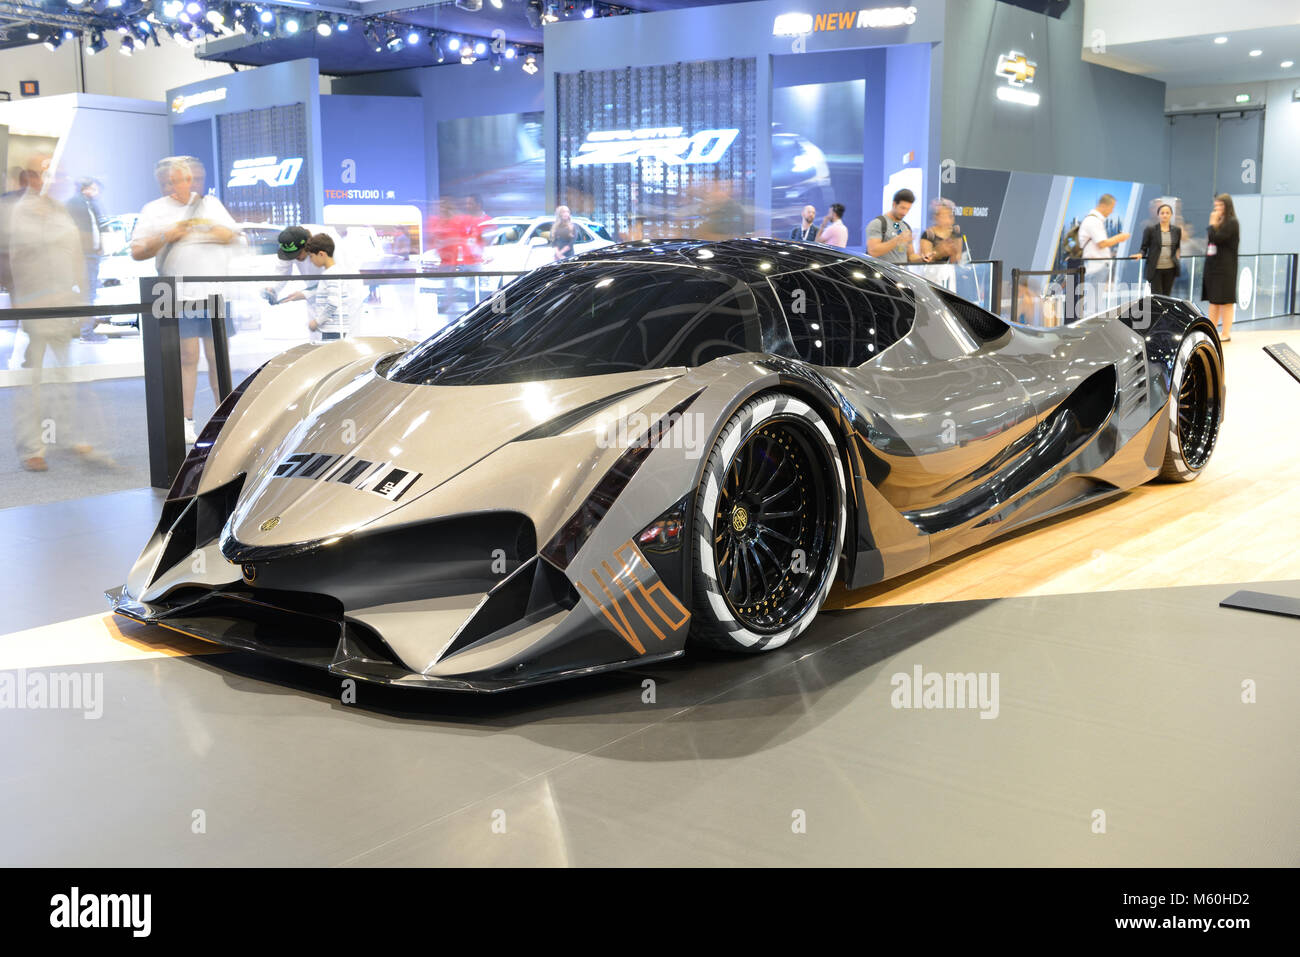 Devel Sixteen 2018 >> Devel Sixteen Stock Photos & Devel Sixteen Stock Images - Alamy